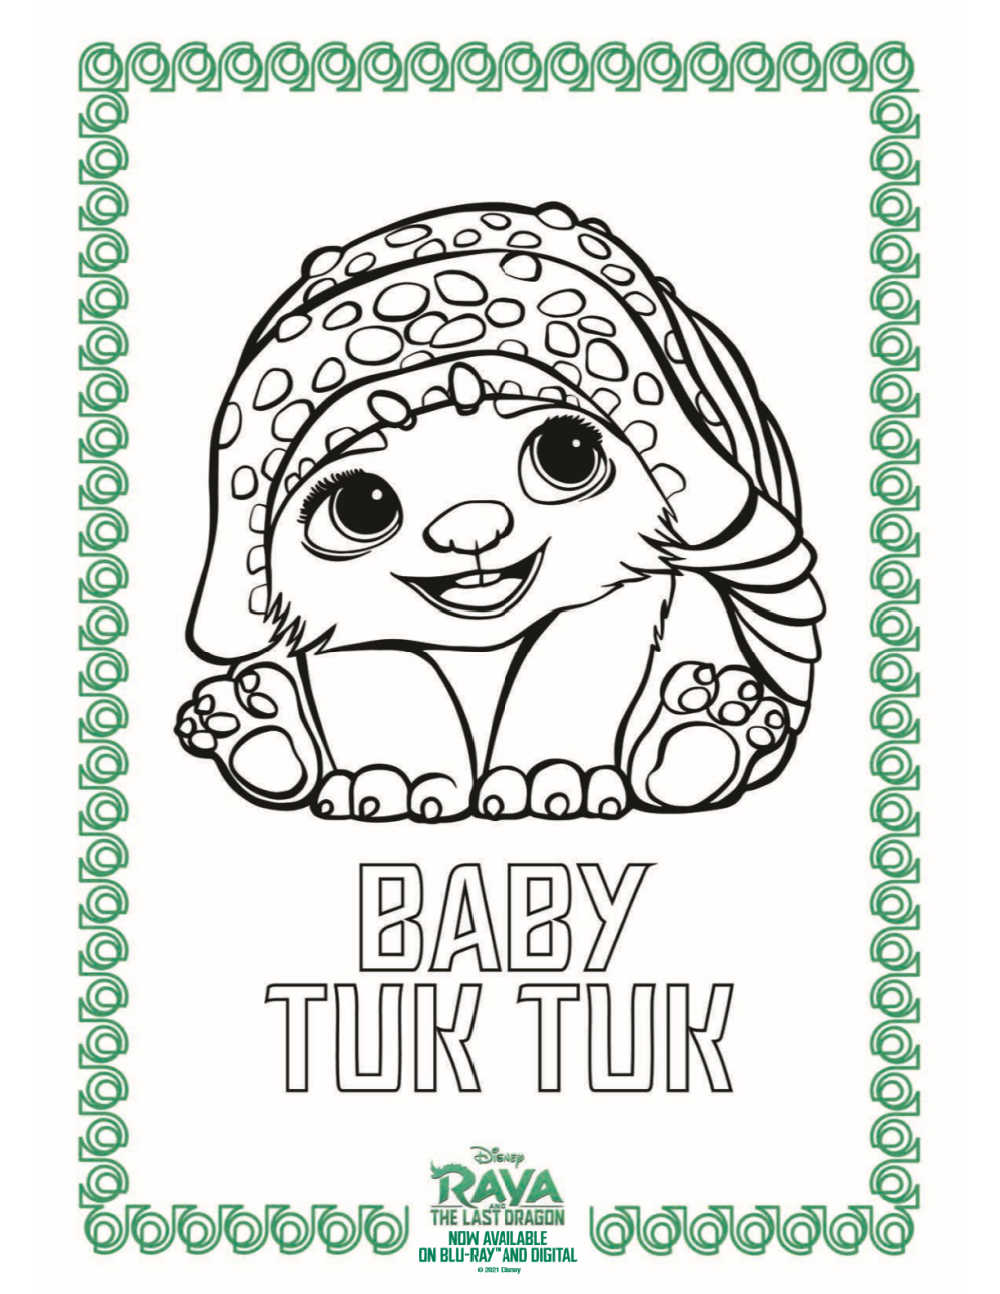 Raya and The Last Dragon fans will love it, when you download this free printable Baby Tuk Tuk coloring page from Disney.